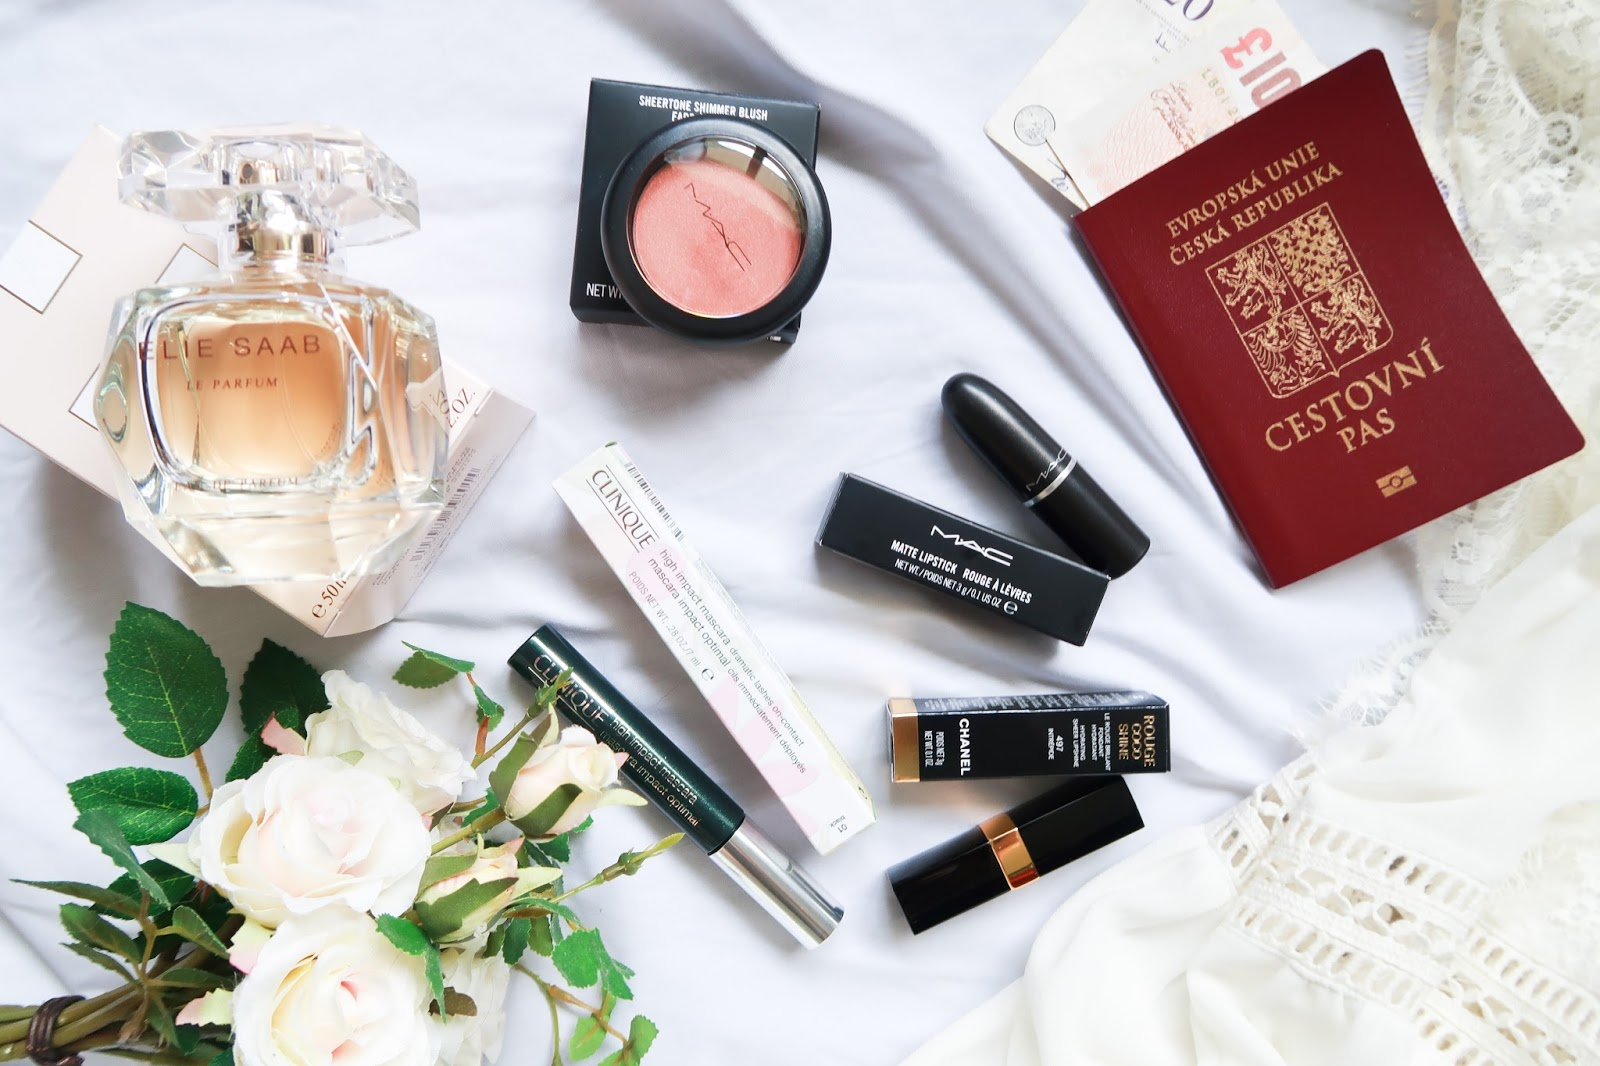 World Duty Free beauty haul